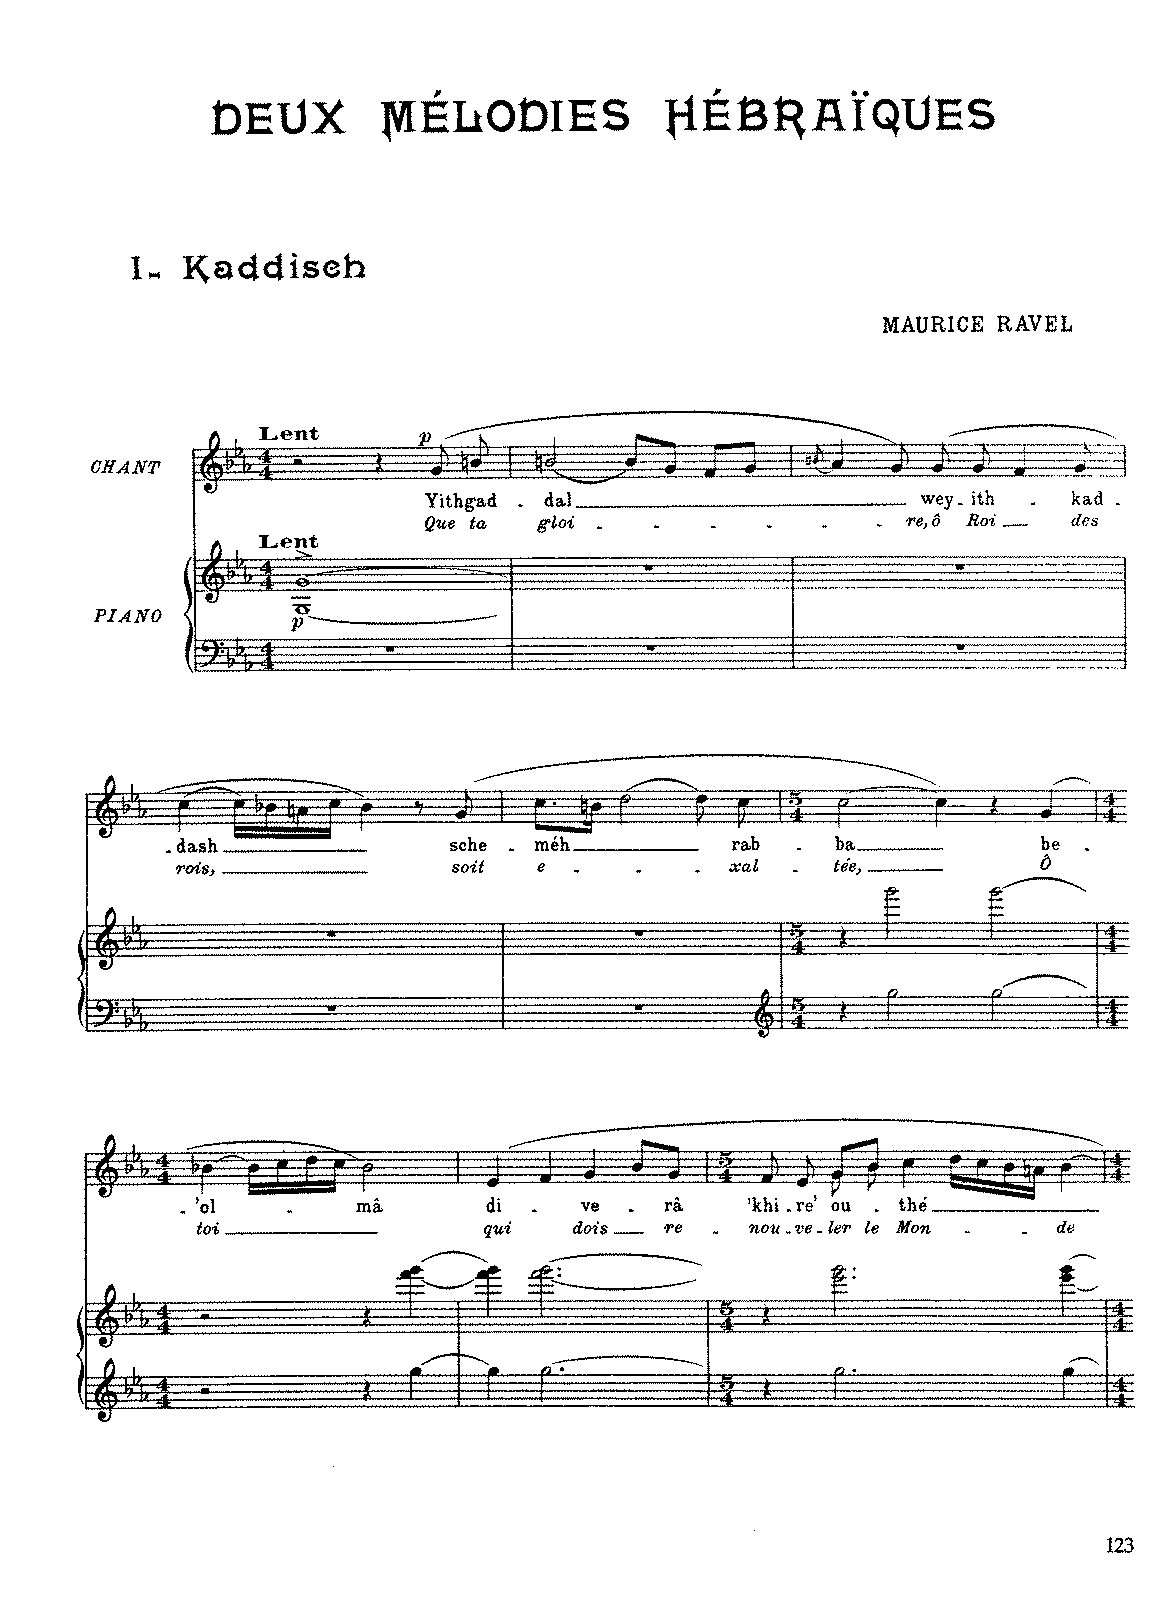 Ravel - 2 Mélodies Hébraïques (voice and piano).pdf